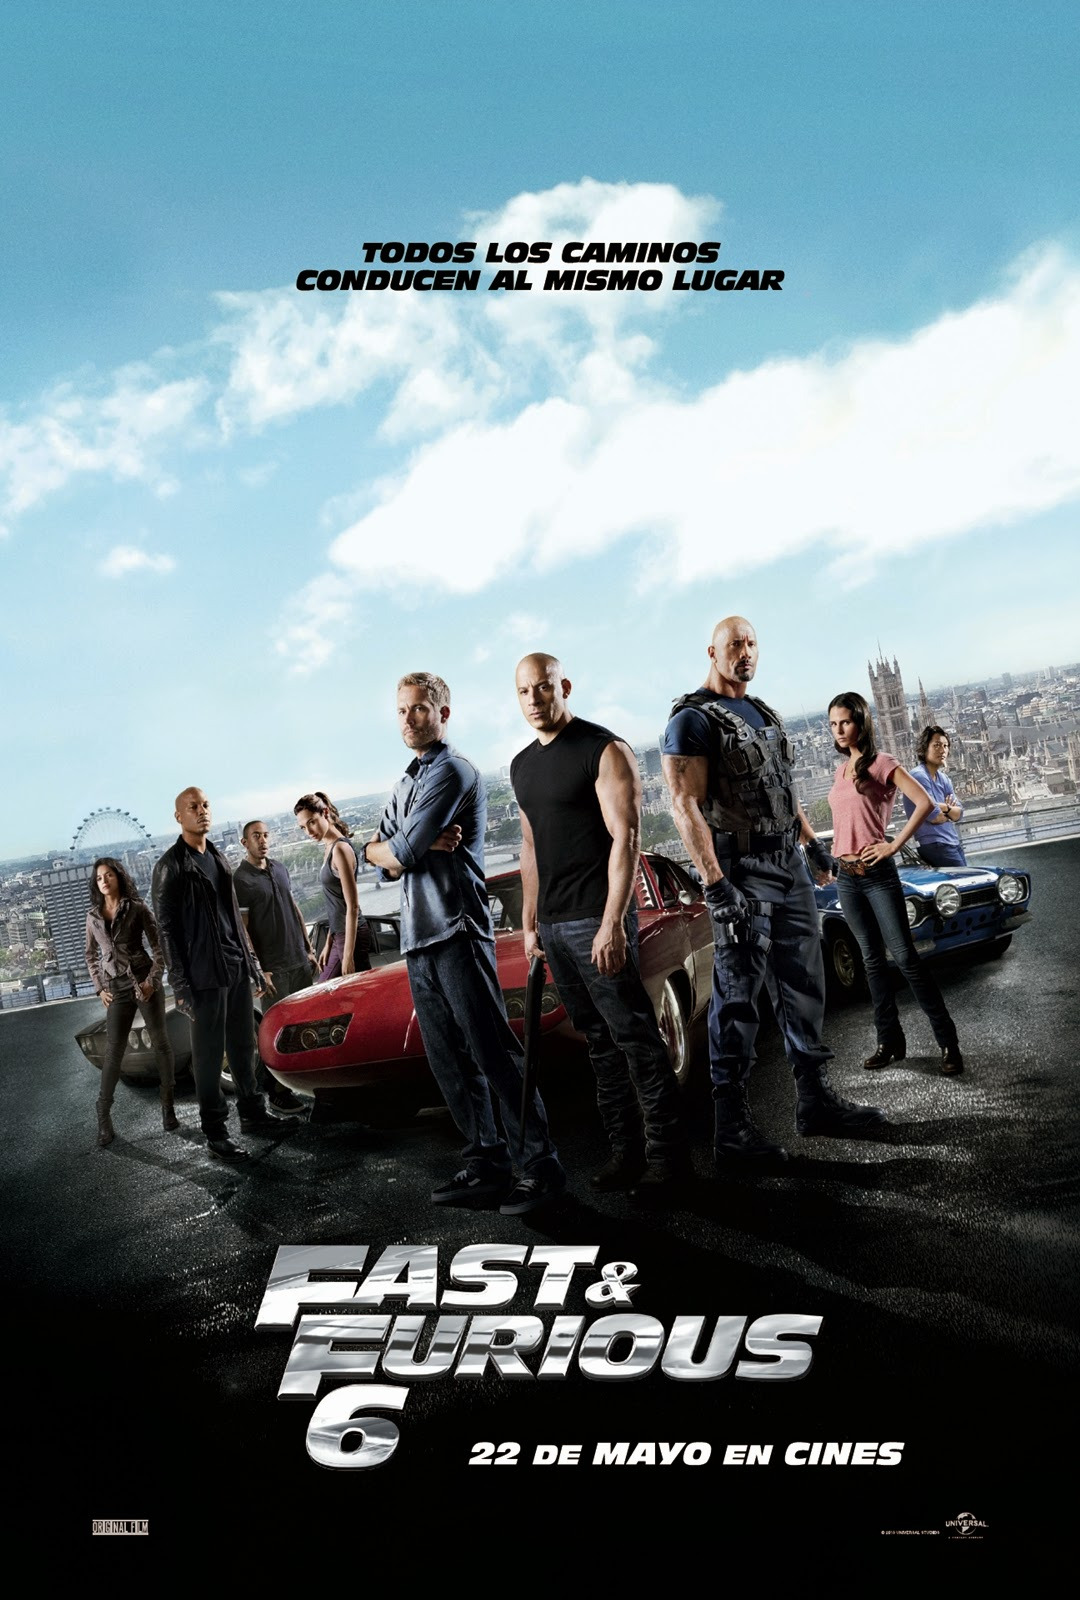 Fast and furious 6 - Cartel